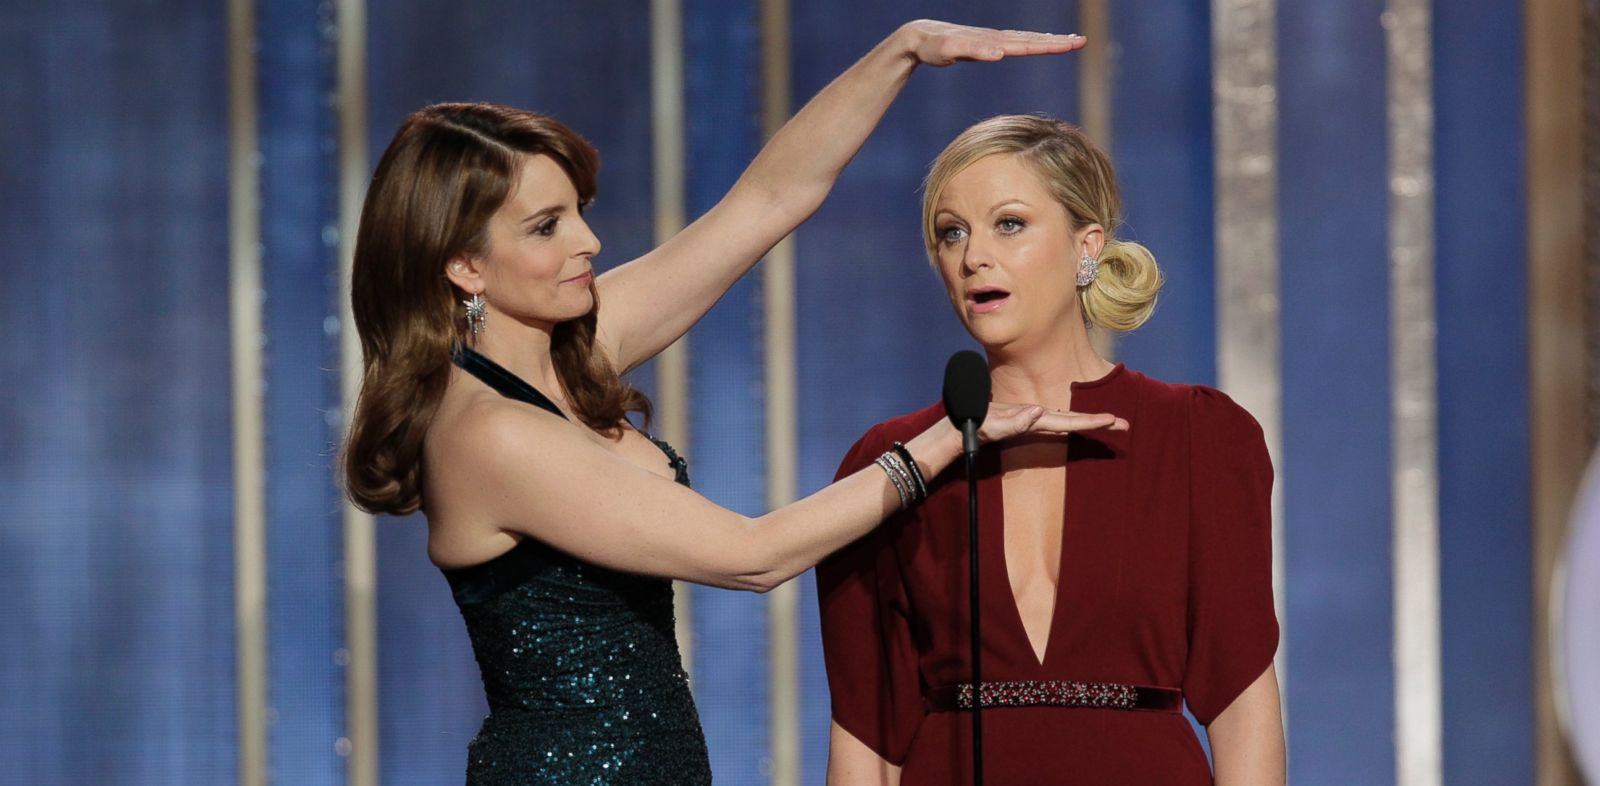 PHOTO: In this file photo, Tina Fey, left, and Amy Poehler, right, host the 70th Annual Golden Globe Awards on Jan. 13, 2013 in Beverly Hills, Calif.